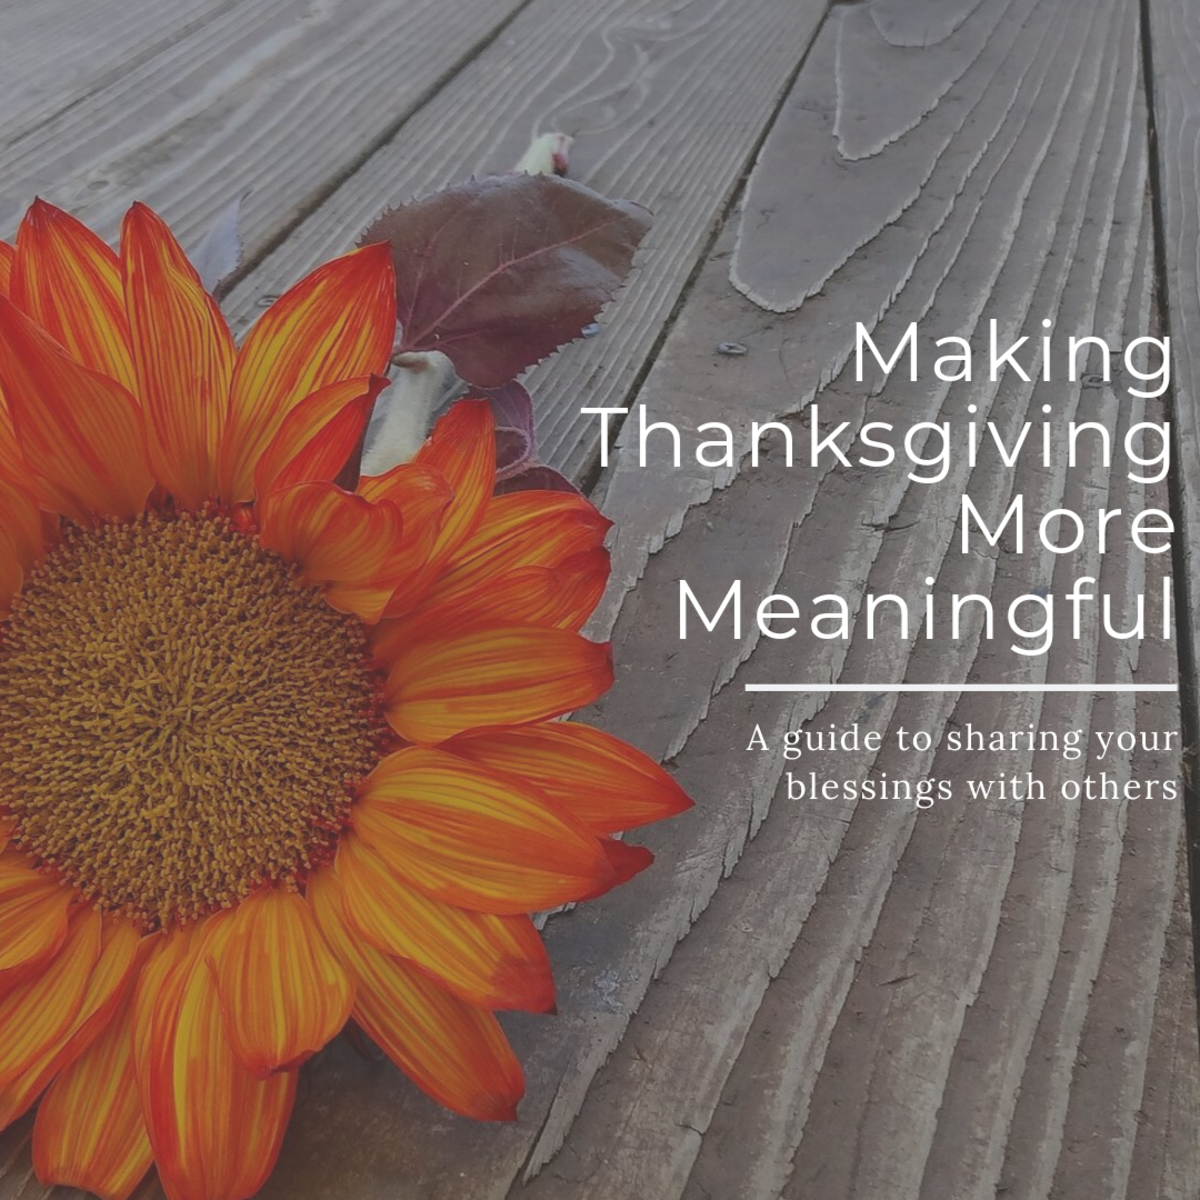 Here are some various activities you can do to help make your Thanksgiving a bit more meaningful.